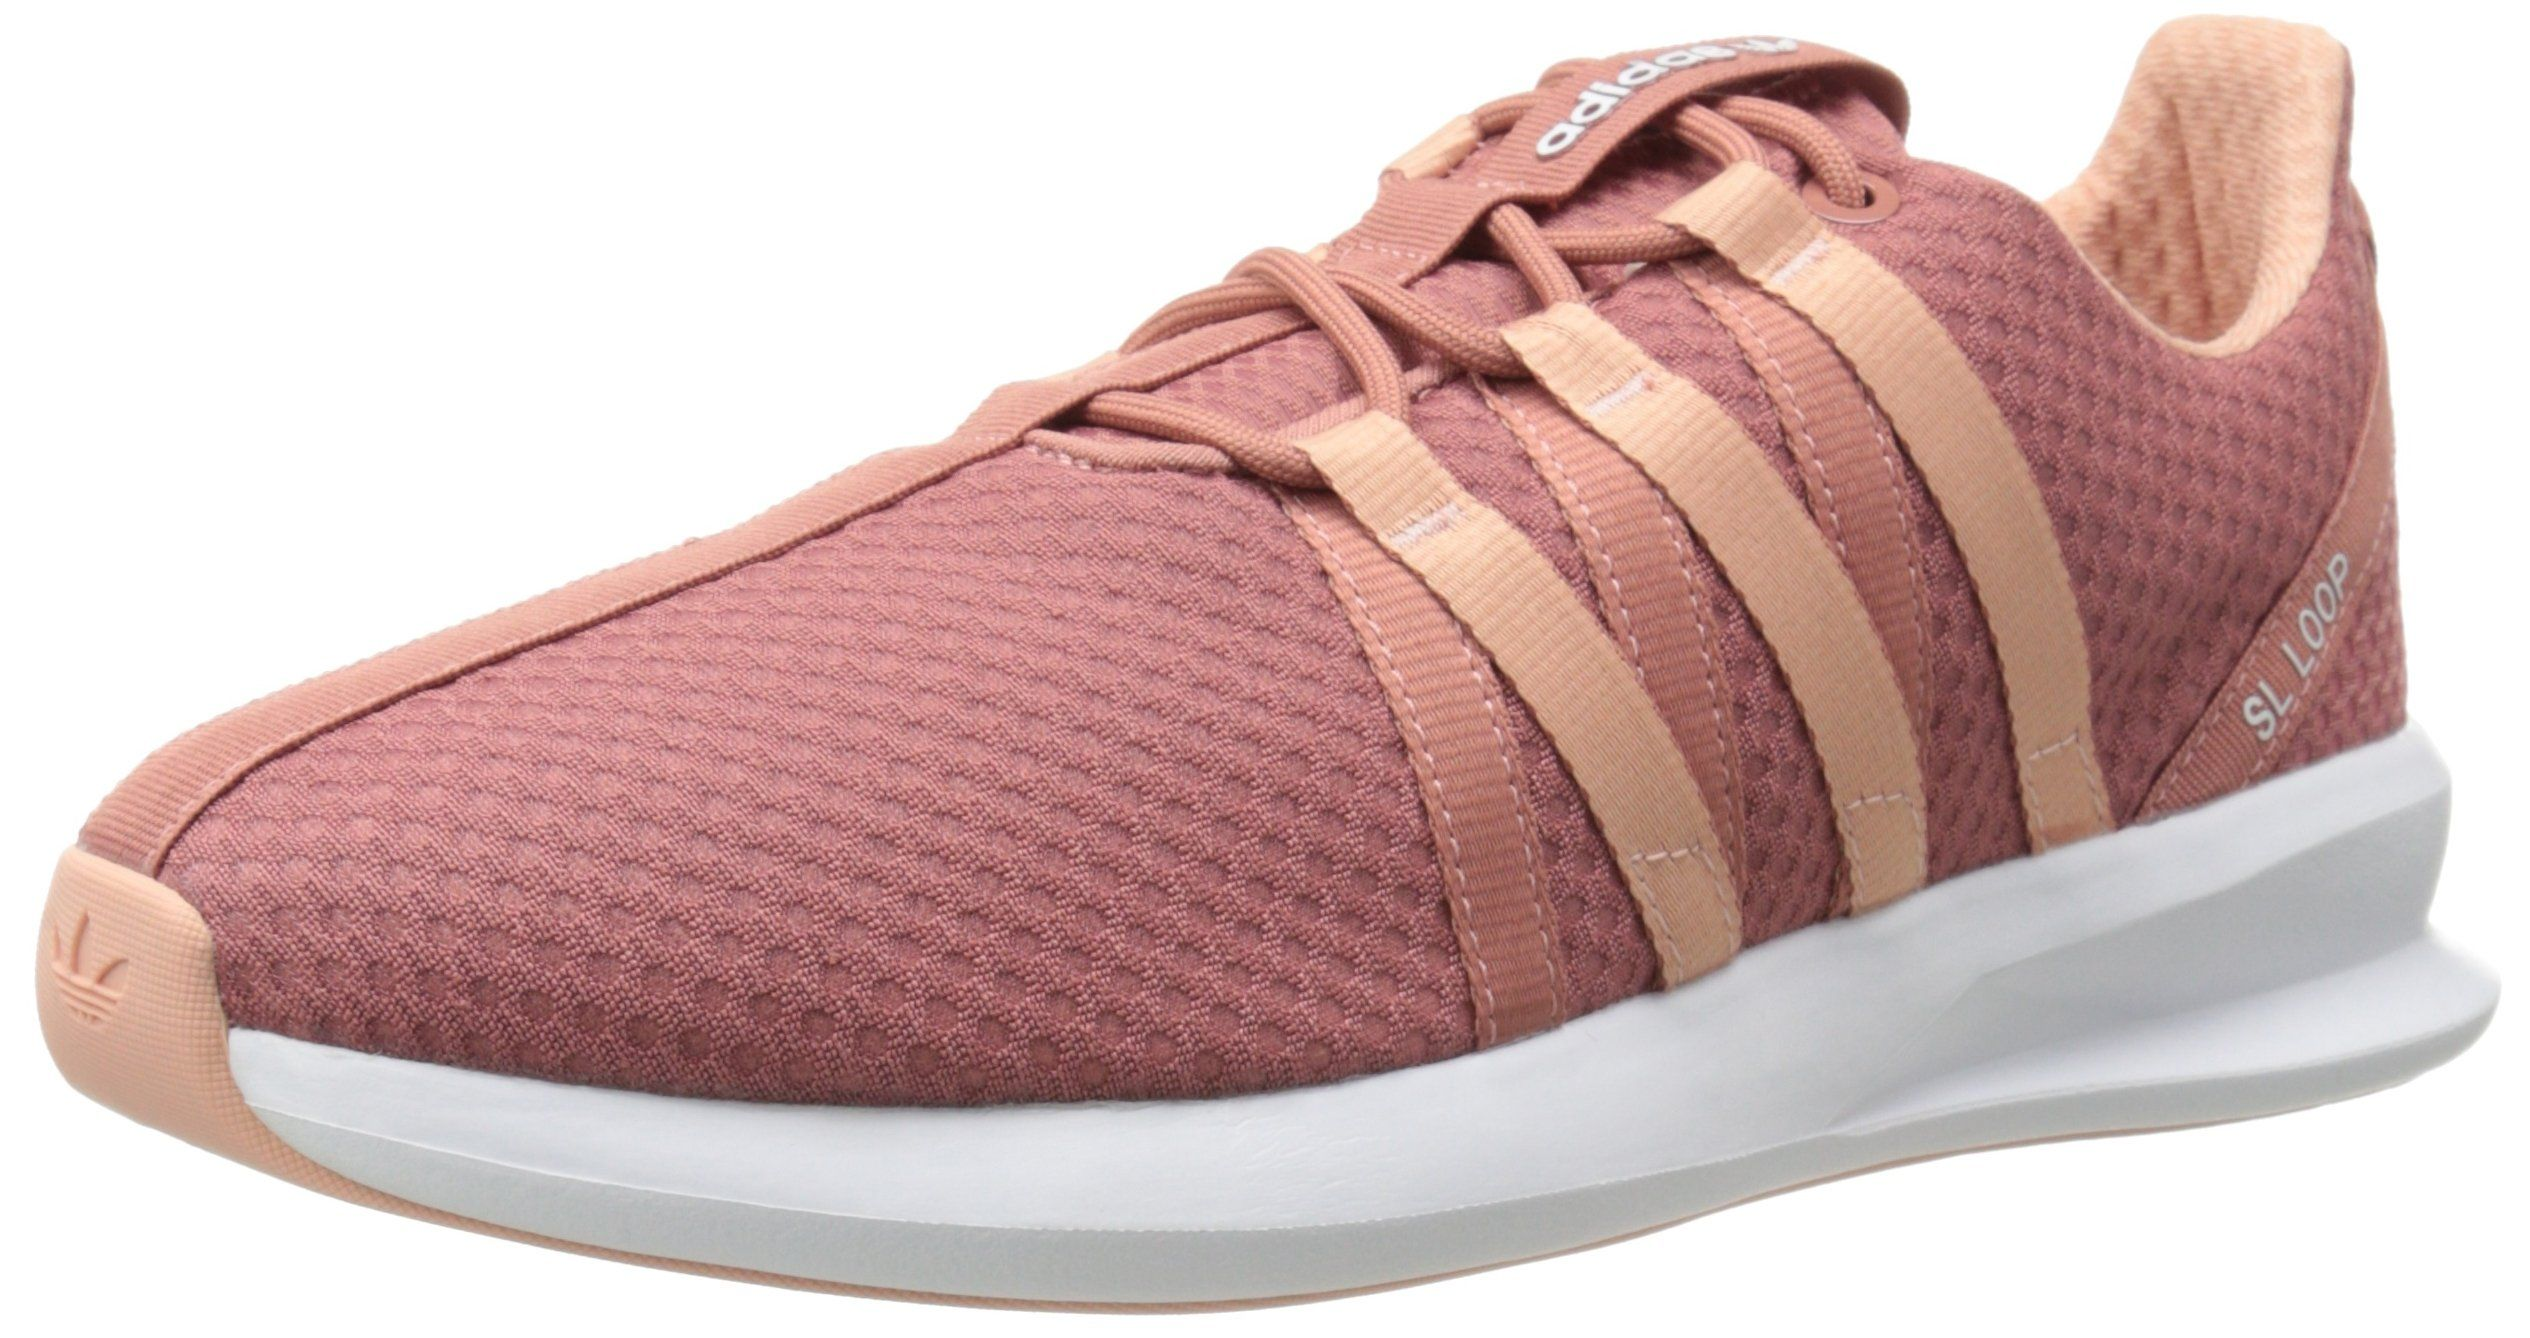 Womens Shoes adidas Originals SL Loop Racer W Ash Pink/Dust Pink/White